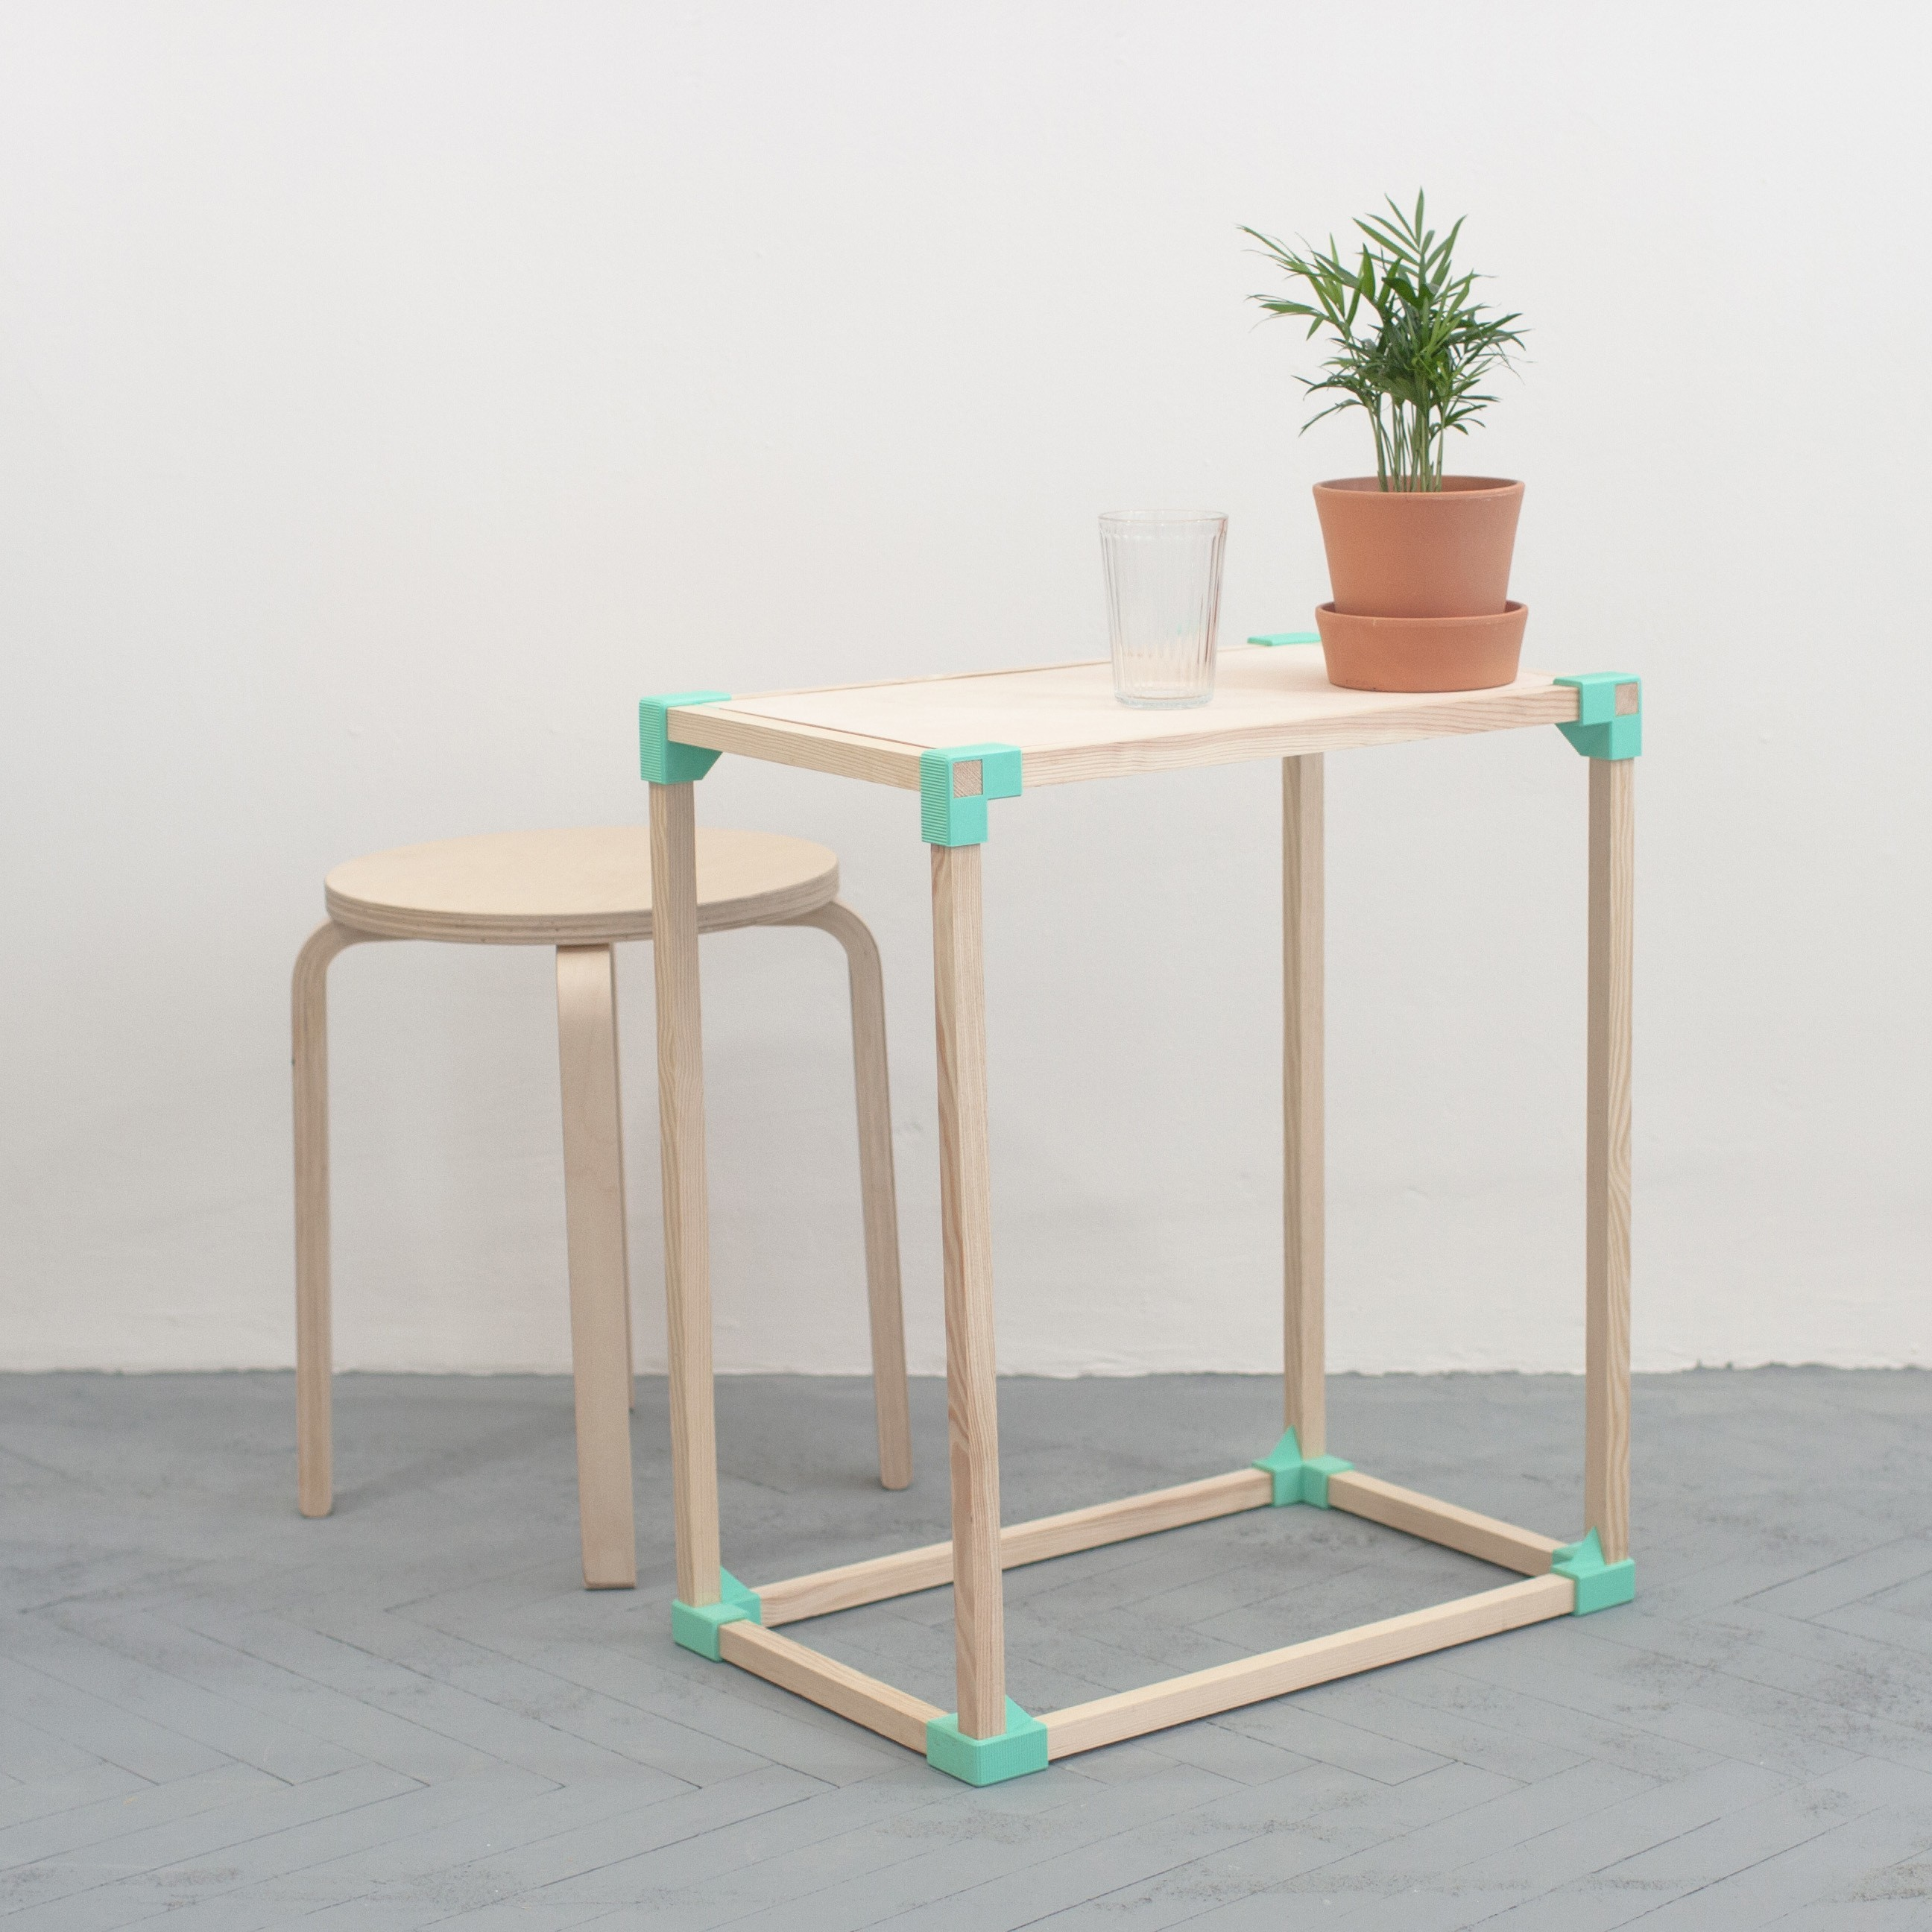 Make Your Own Furniture Thanks To 3D Printing